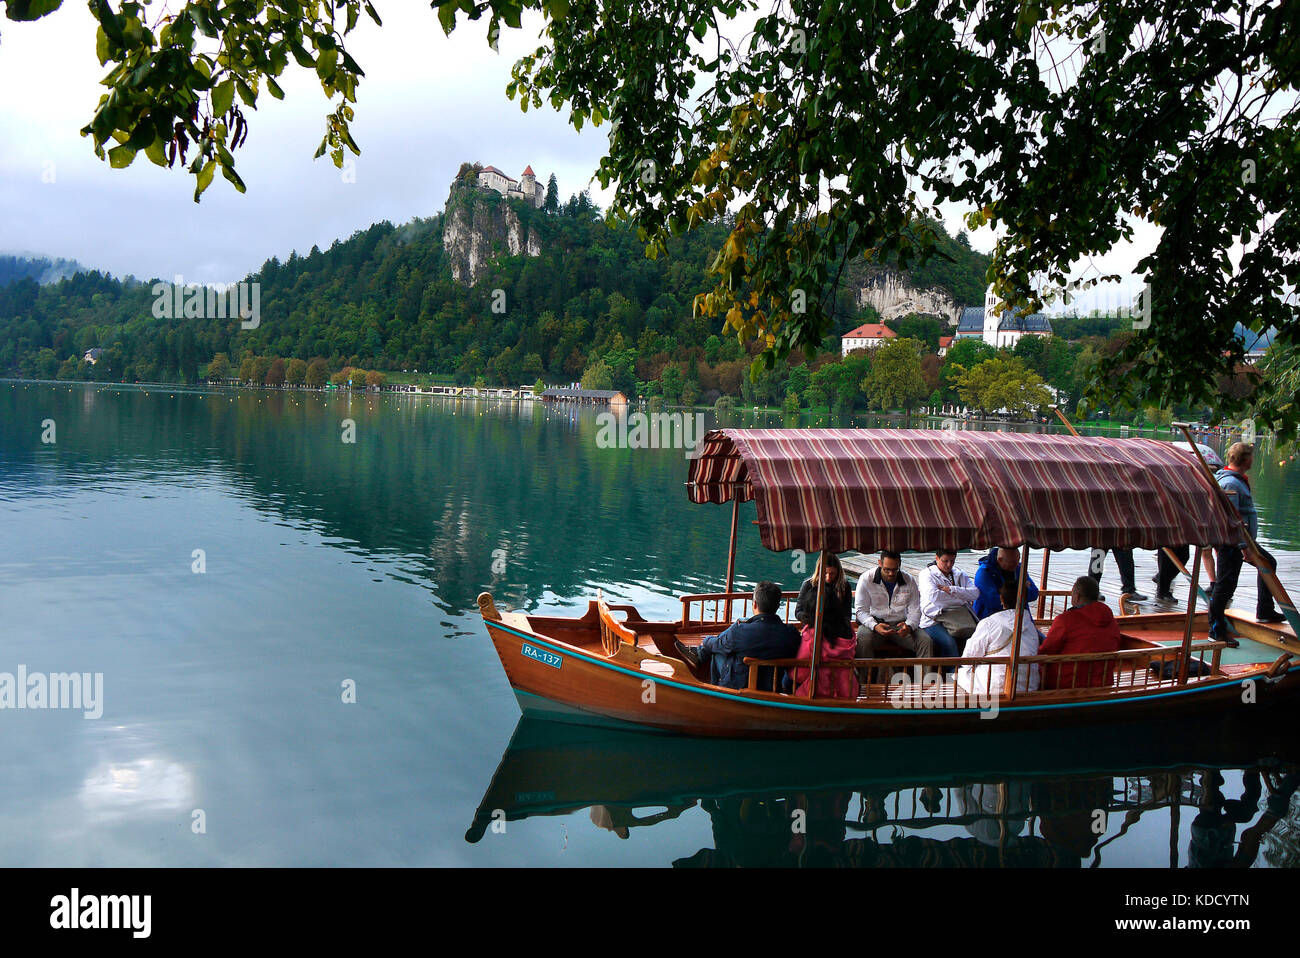 Tourists prepare for a pleasure boat trip round Lake Bled in Bled, Slovenia. In the background is Bled Castle. - Stock Image